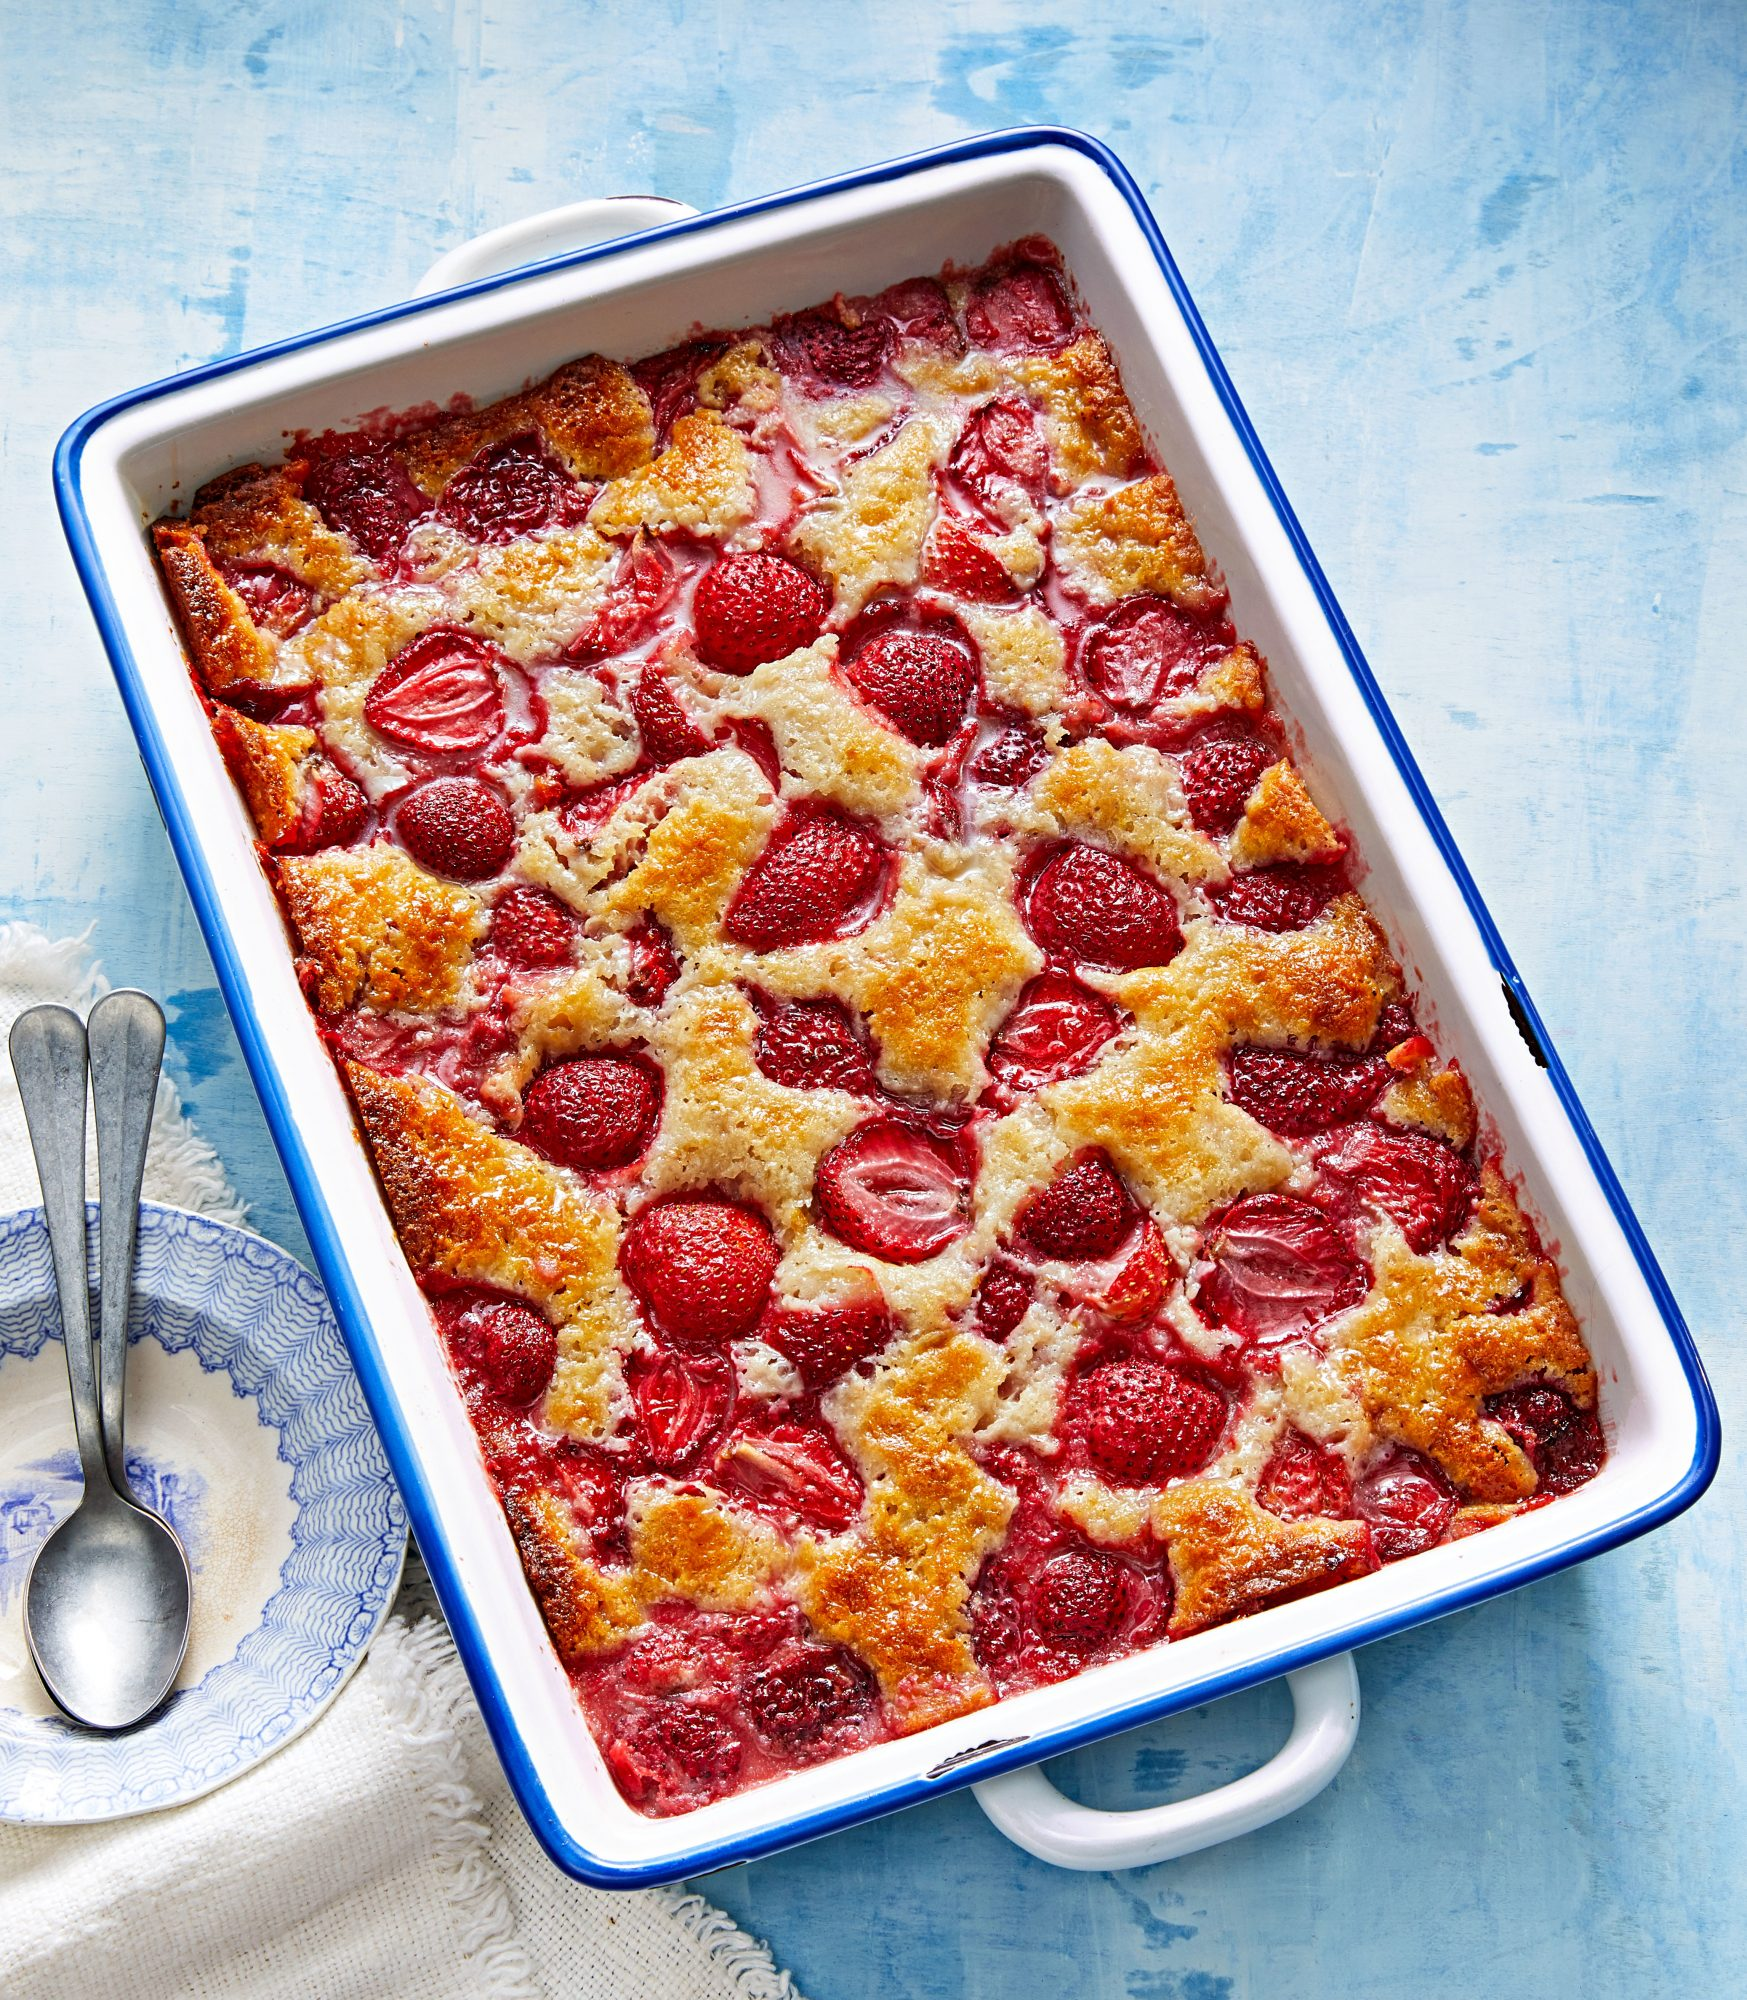 Cakey Strawberry Cobbler